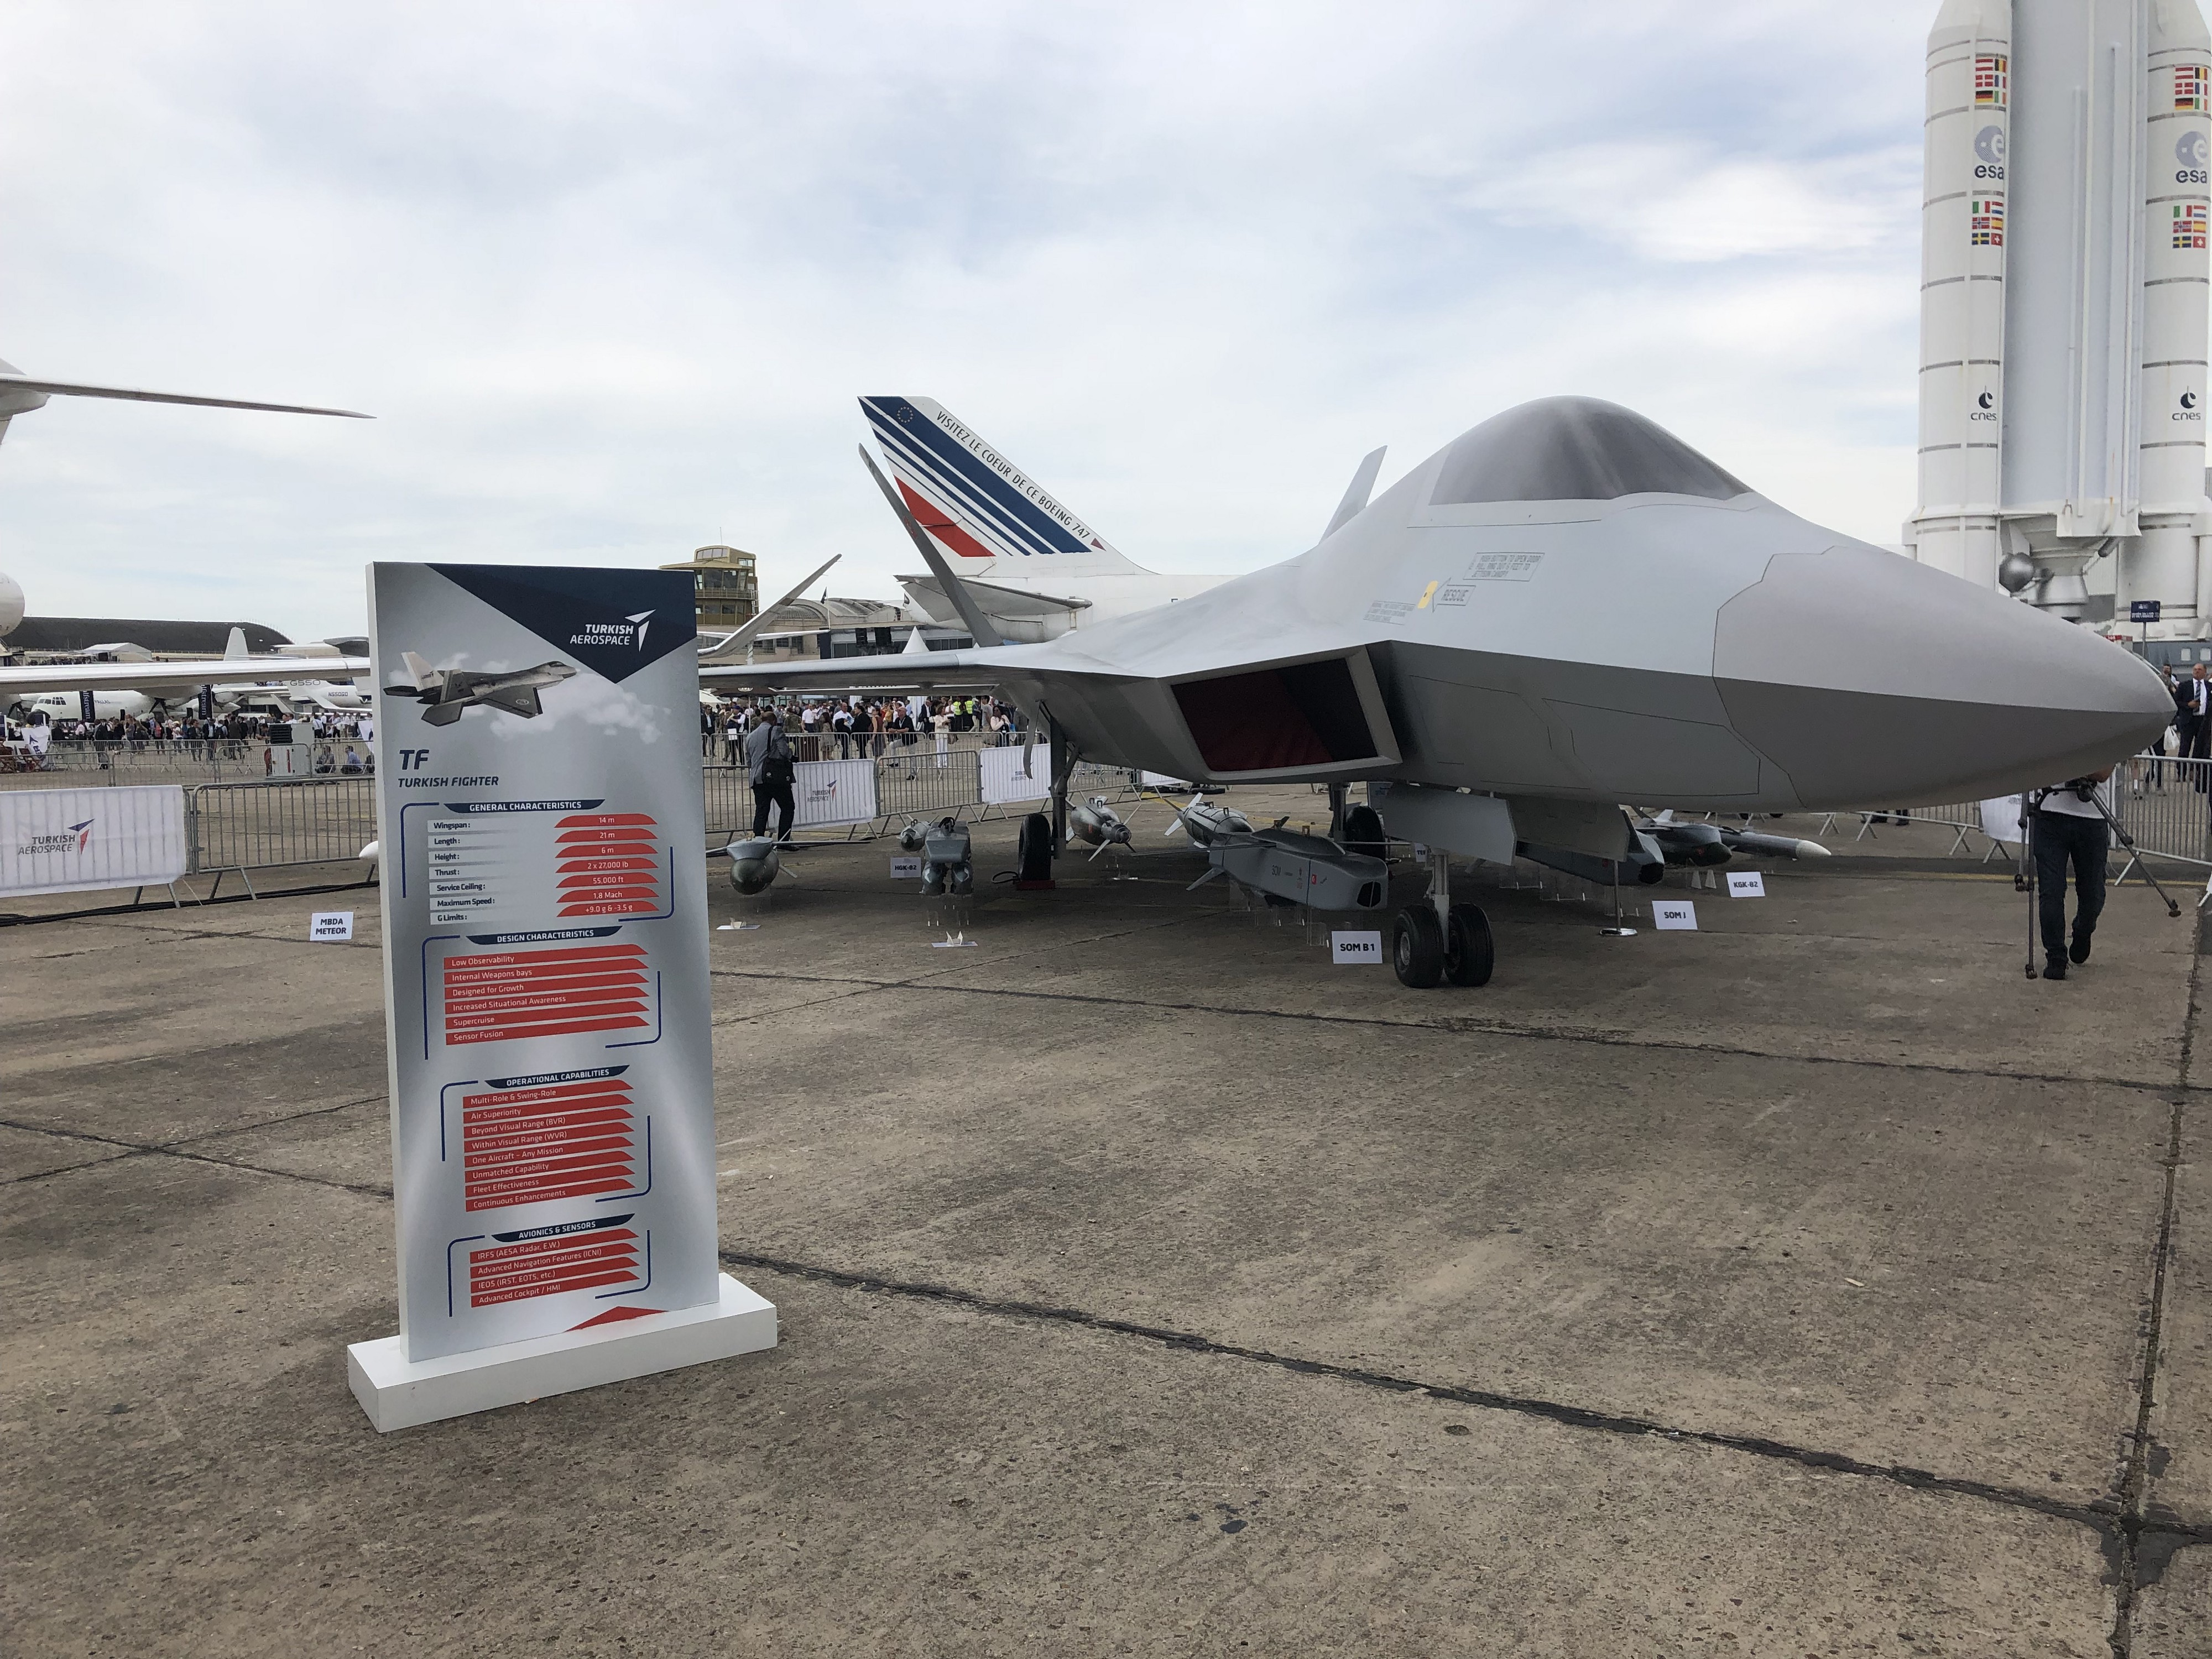 UK Backs Turkey's Fifth-Generation TF-X Stealth Fighter Project Amid Tensions With Greece – Greek Media